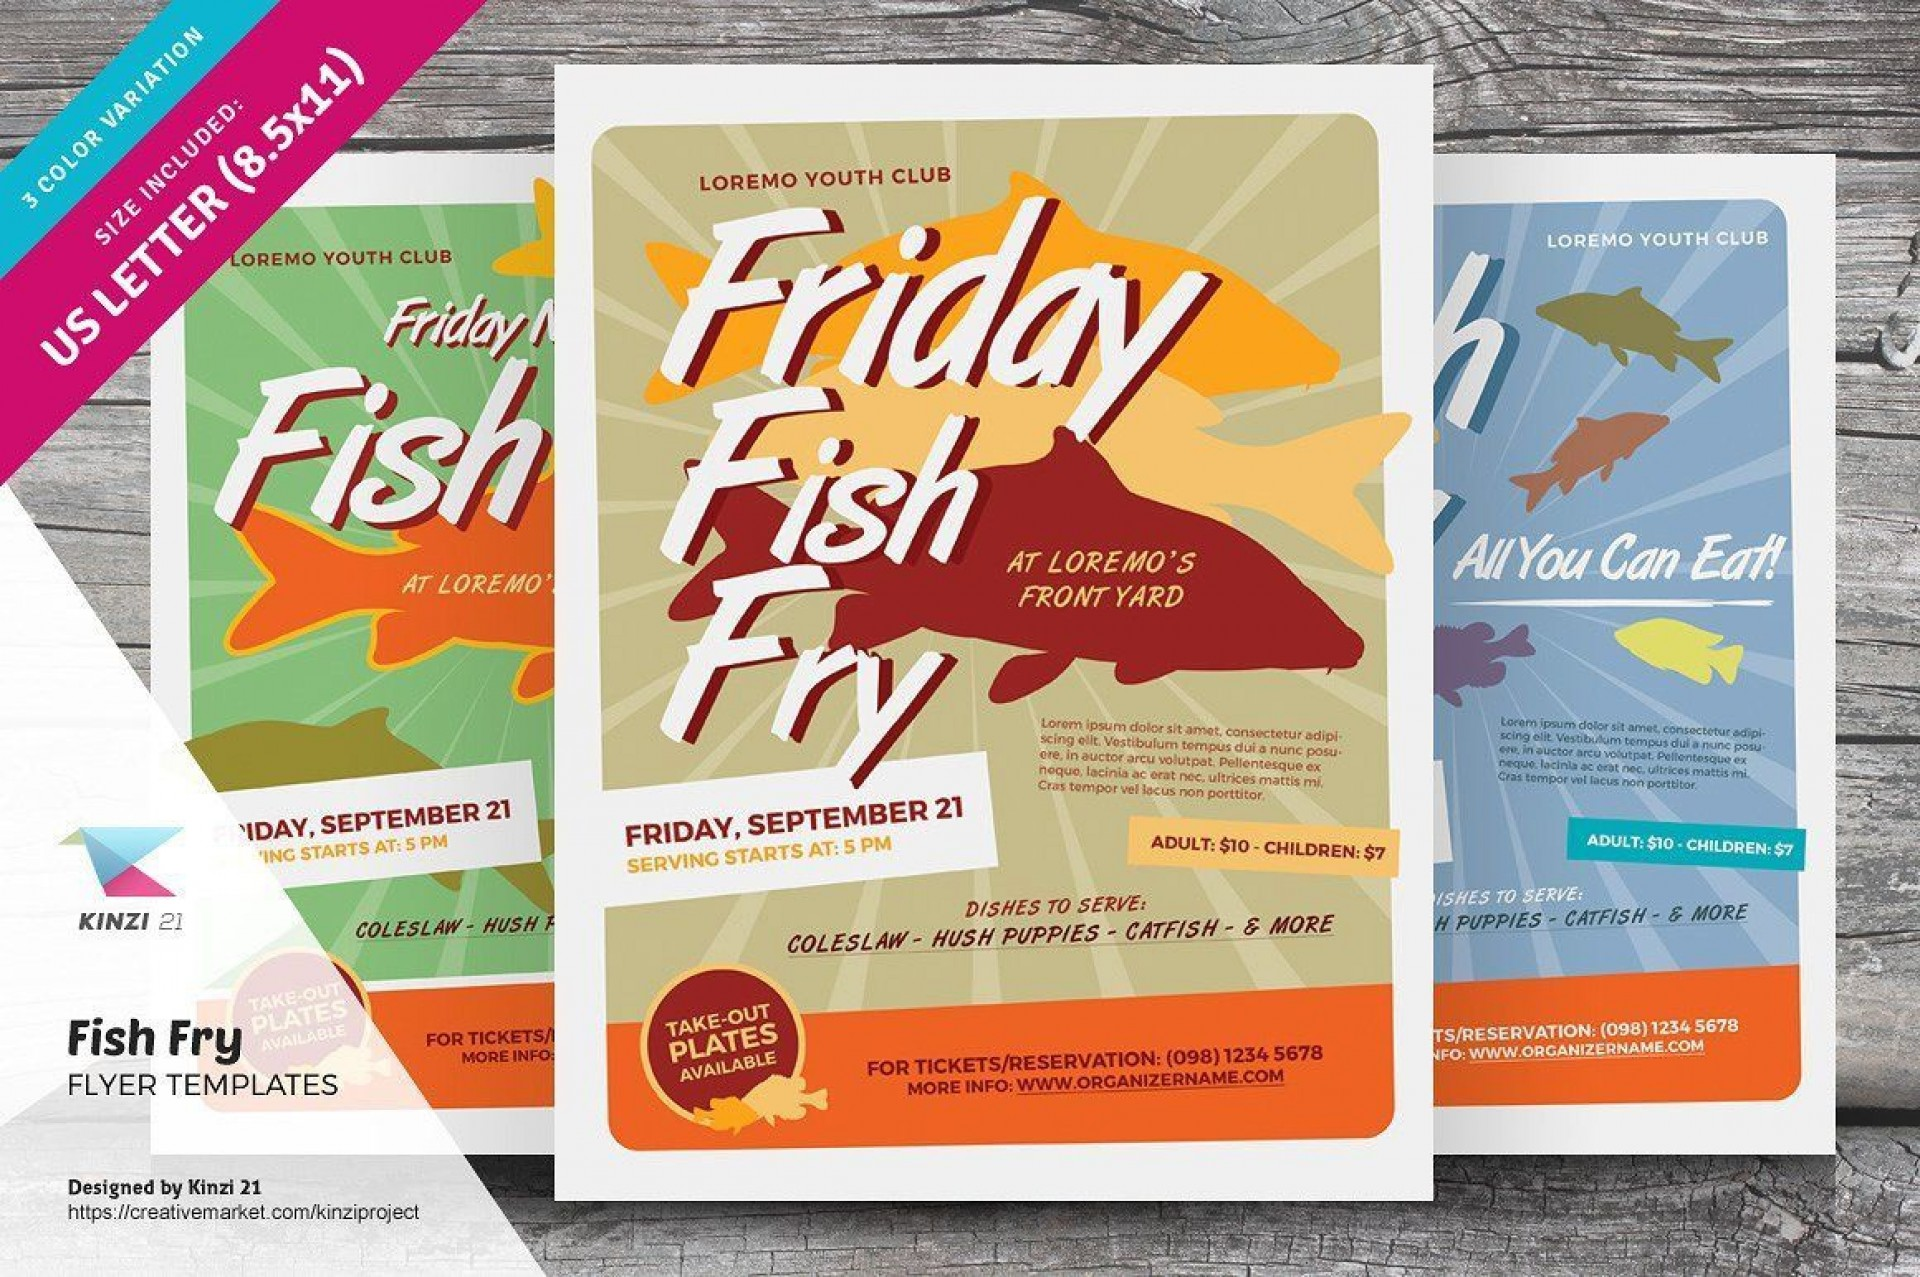 002 Magnificent Fish Fry Flyer Template Idea  Printable Free Powerpoint Psd1920